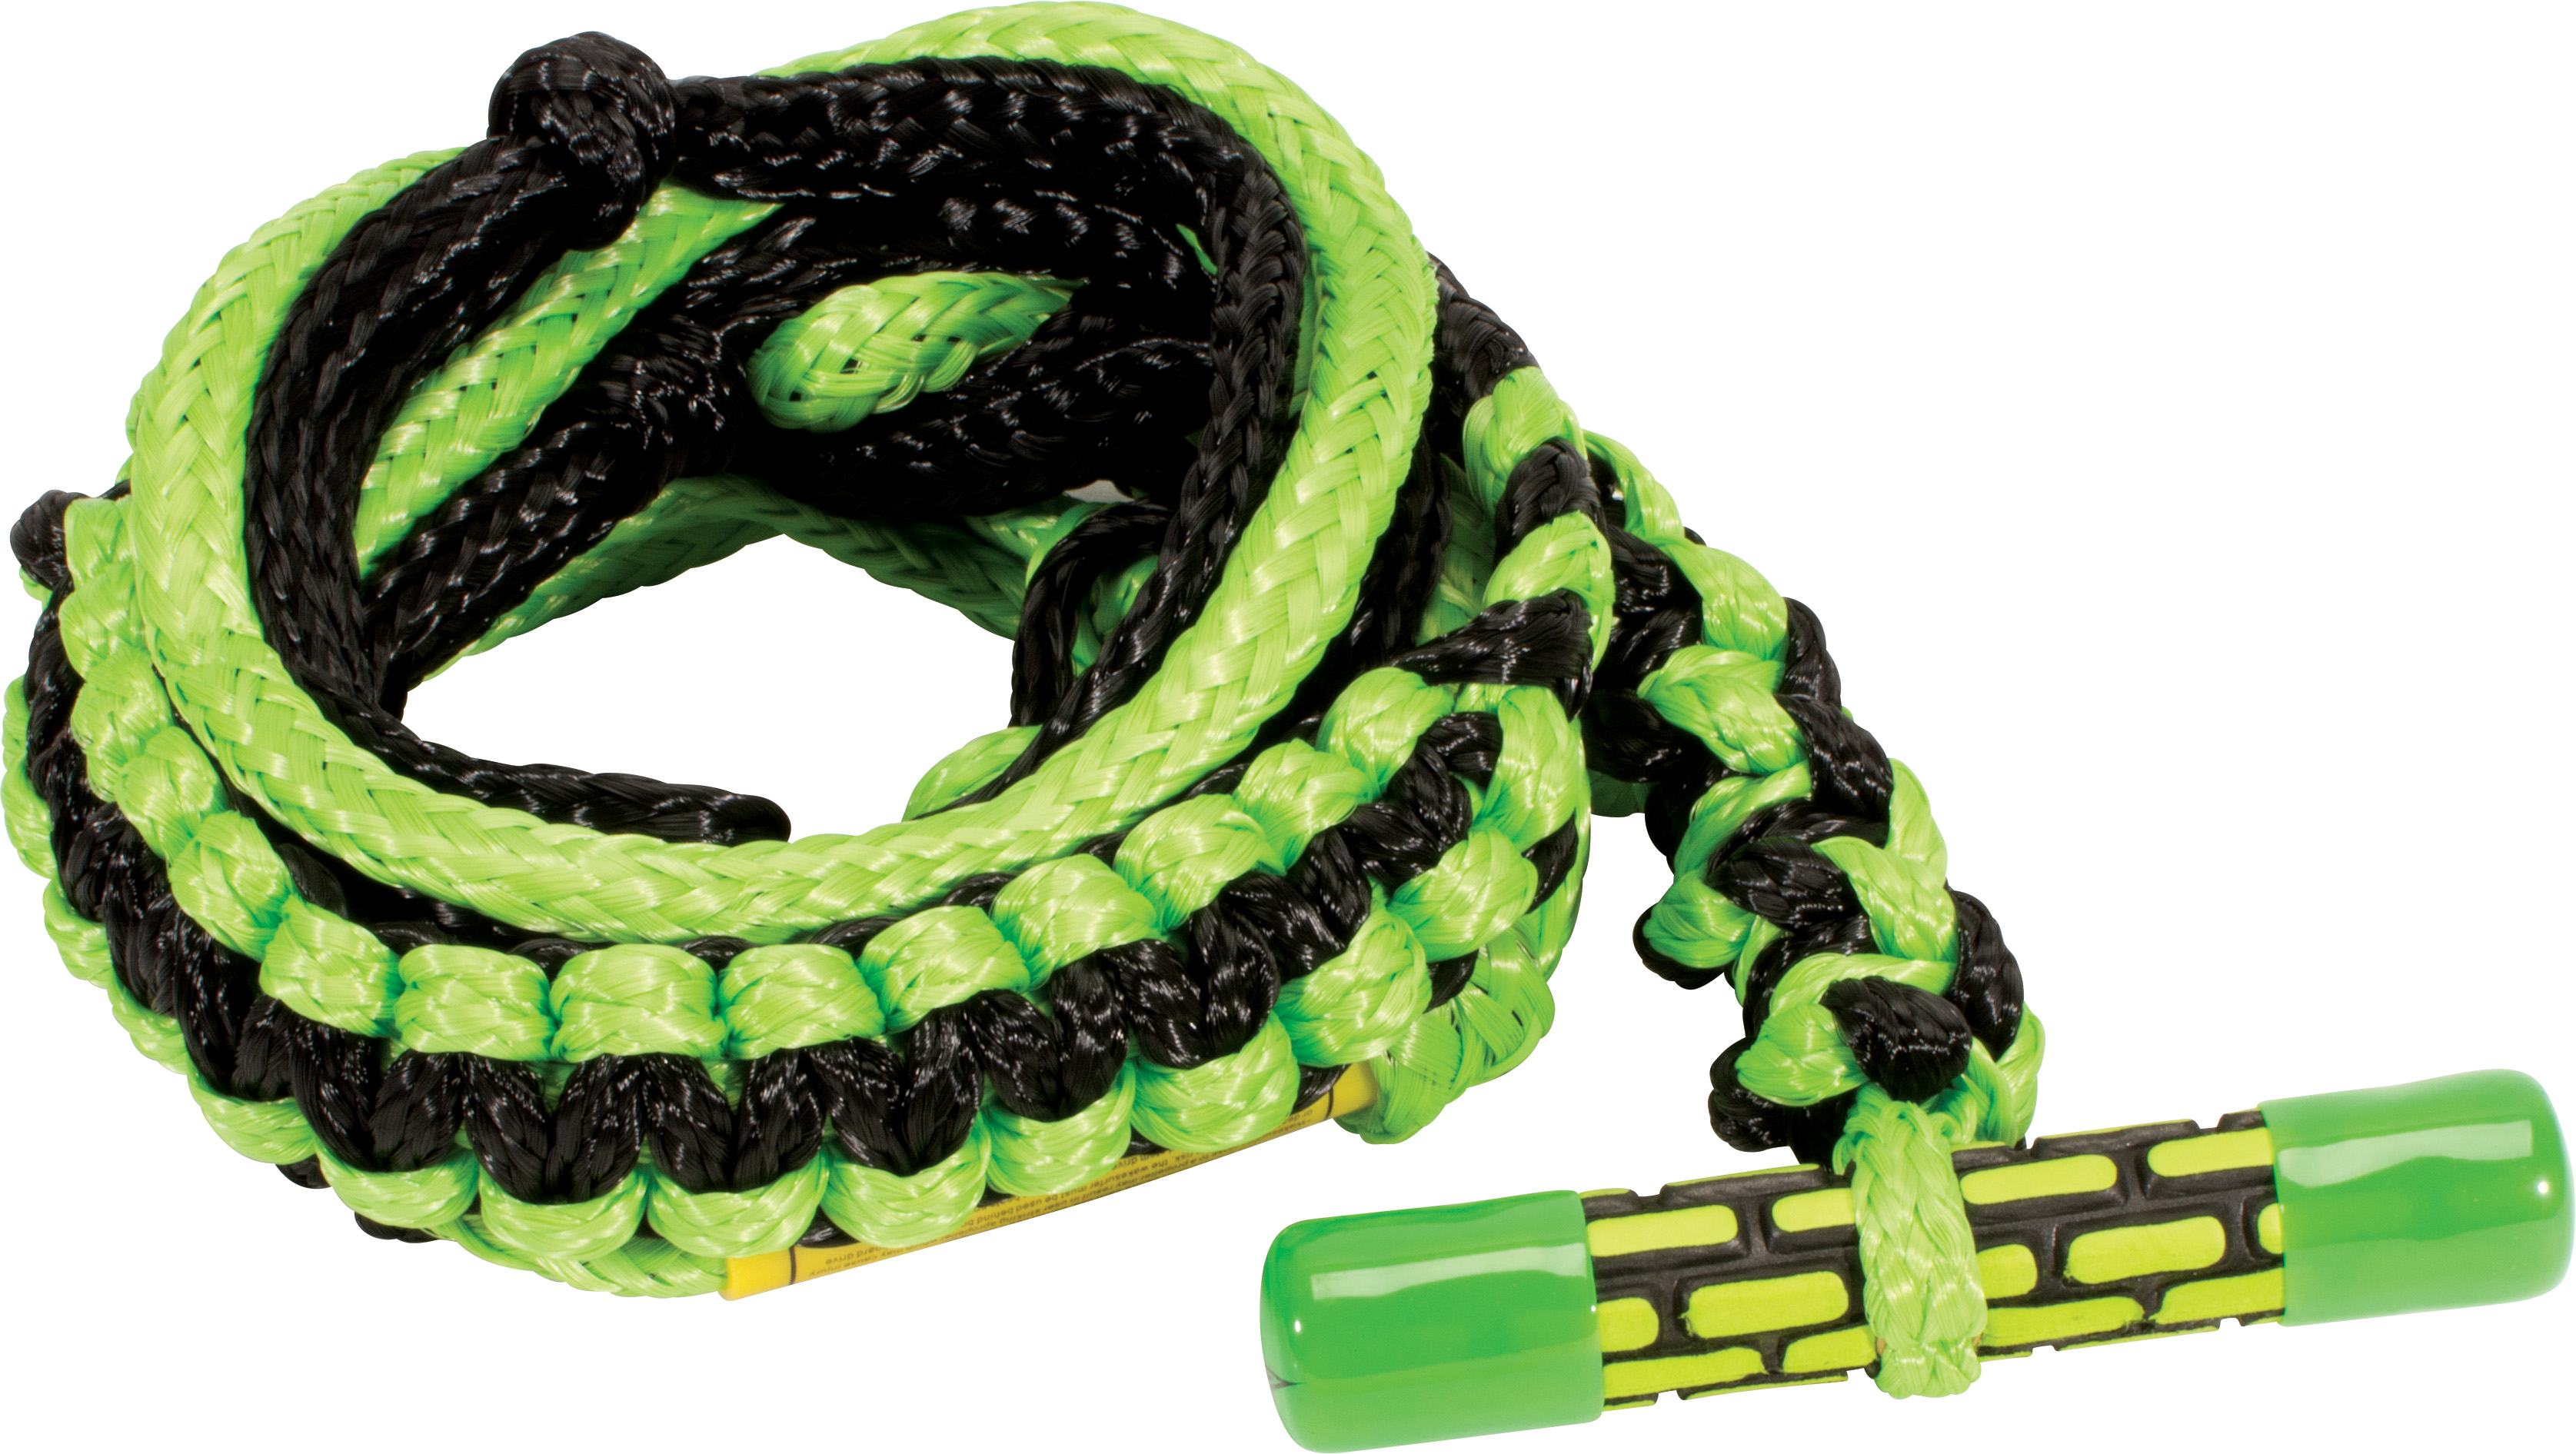 20' SURF ROPE W/T-BAR PACKAGE - GREEN CONNELLY 2018